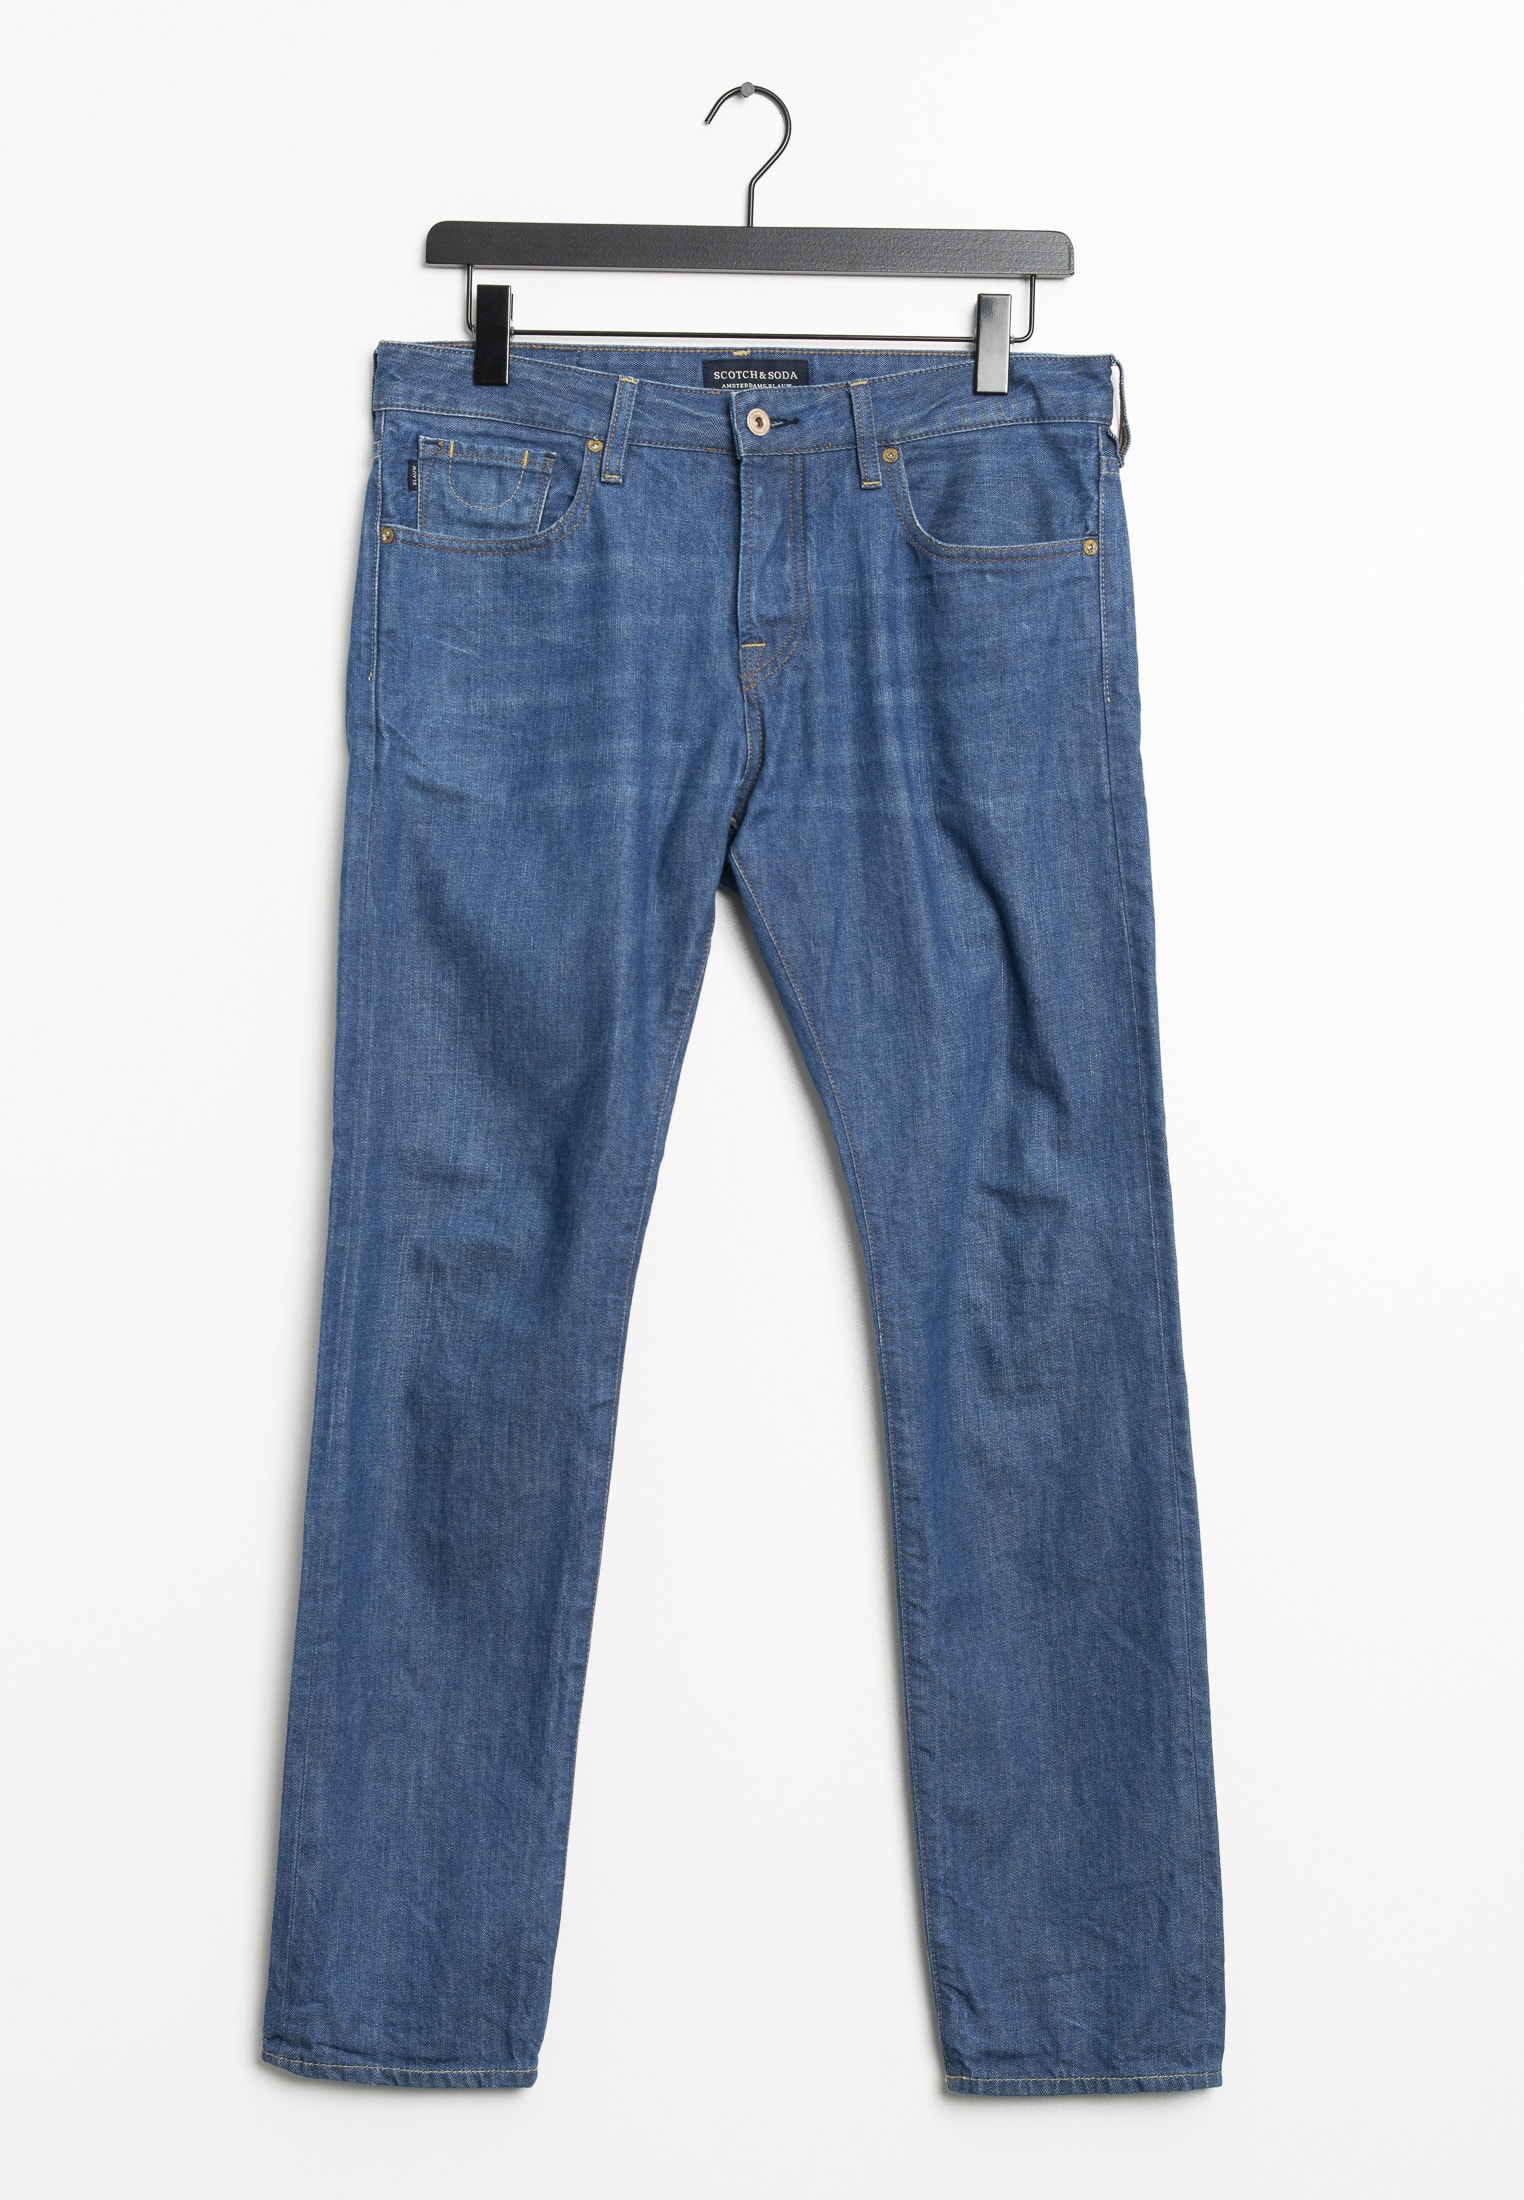 Scotch & Soda Jeans Blau Gr.W34 L32